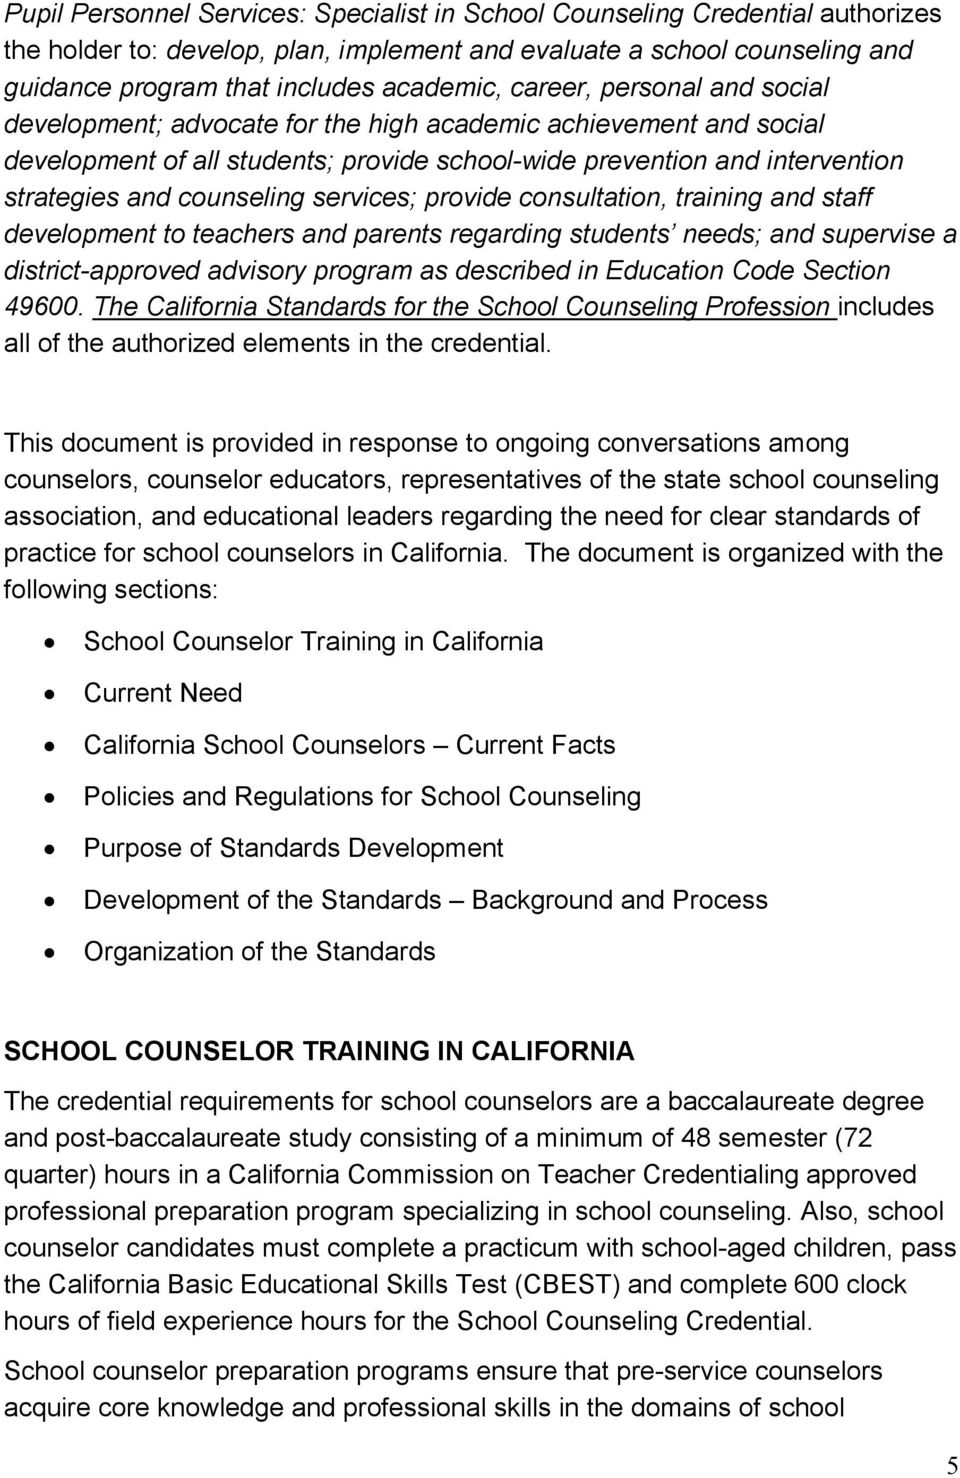 services; provide consultation, training and staff development to teachers and parents regarding students needs; and supervise a district-approved advisory program as described in Education Code